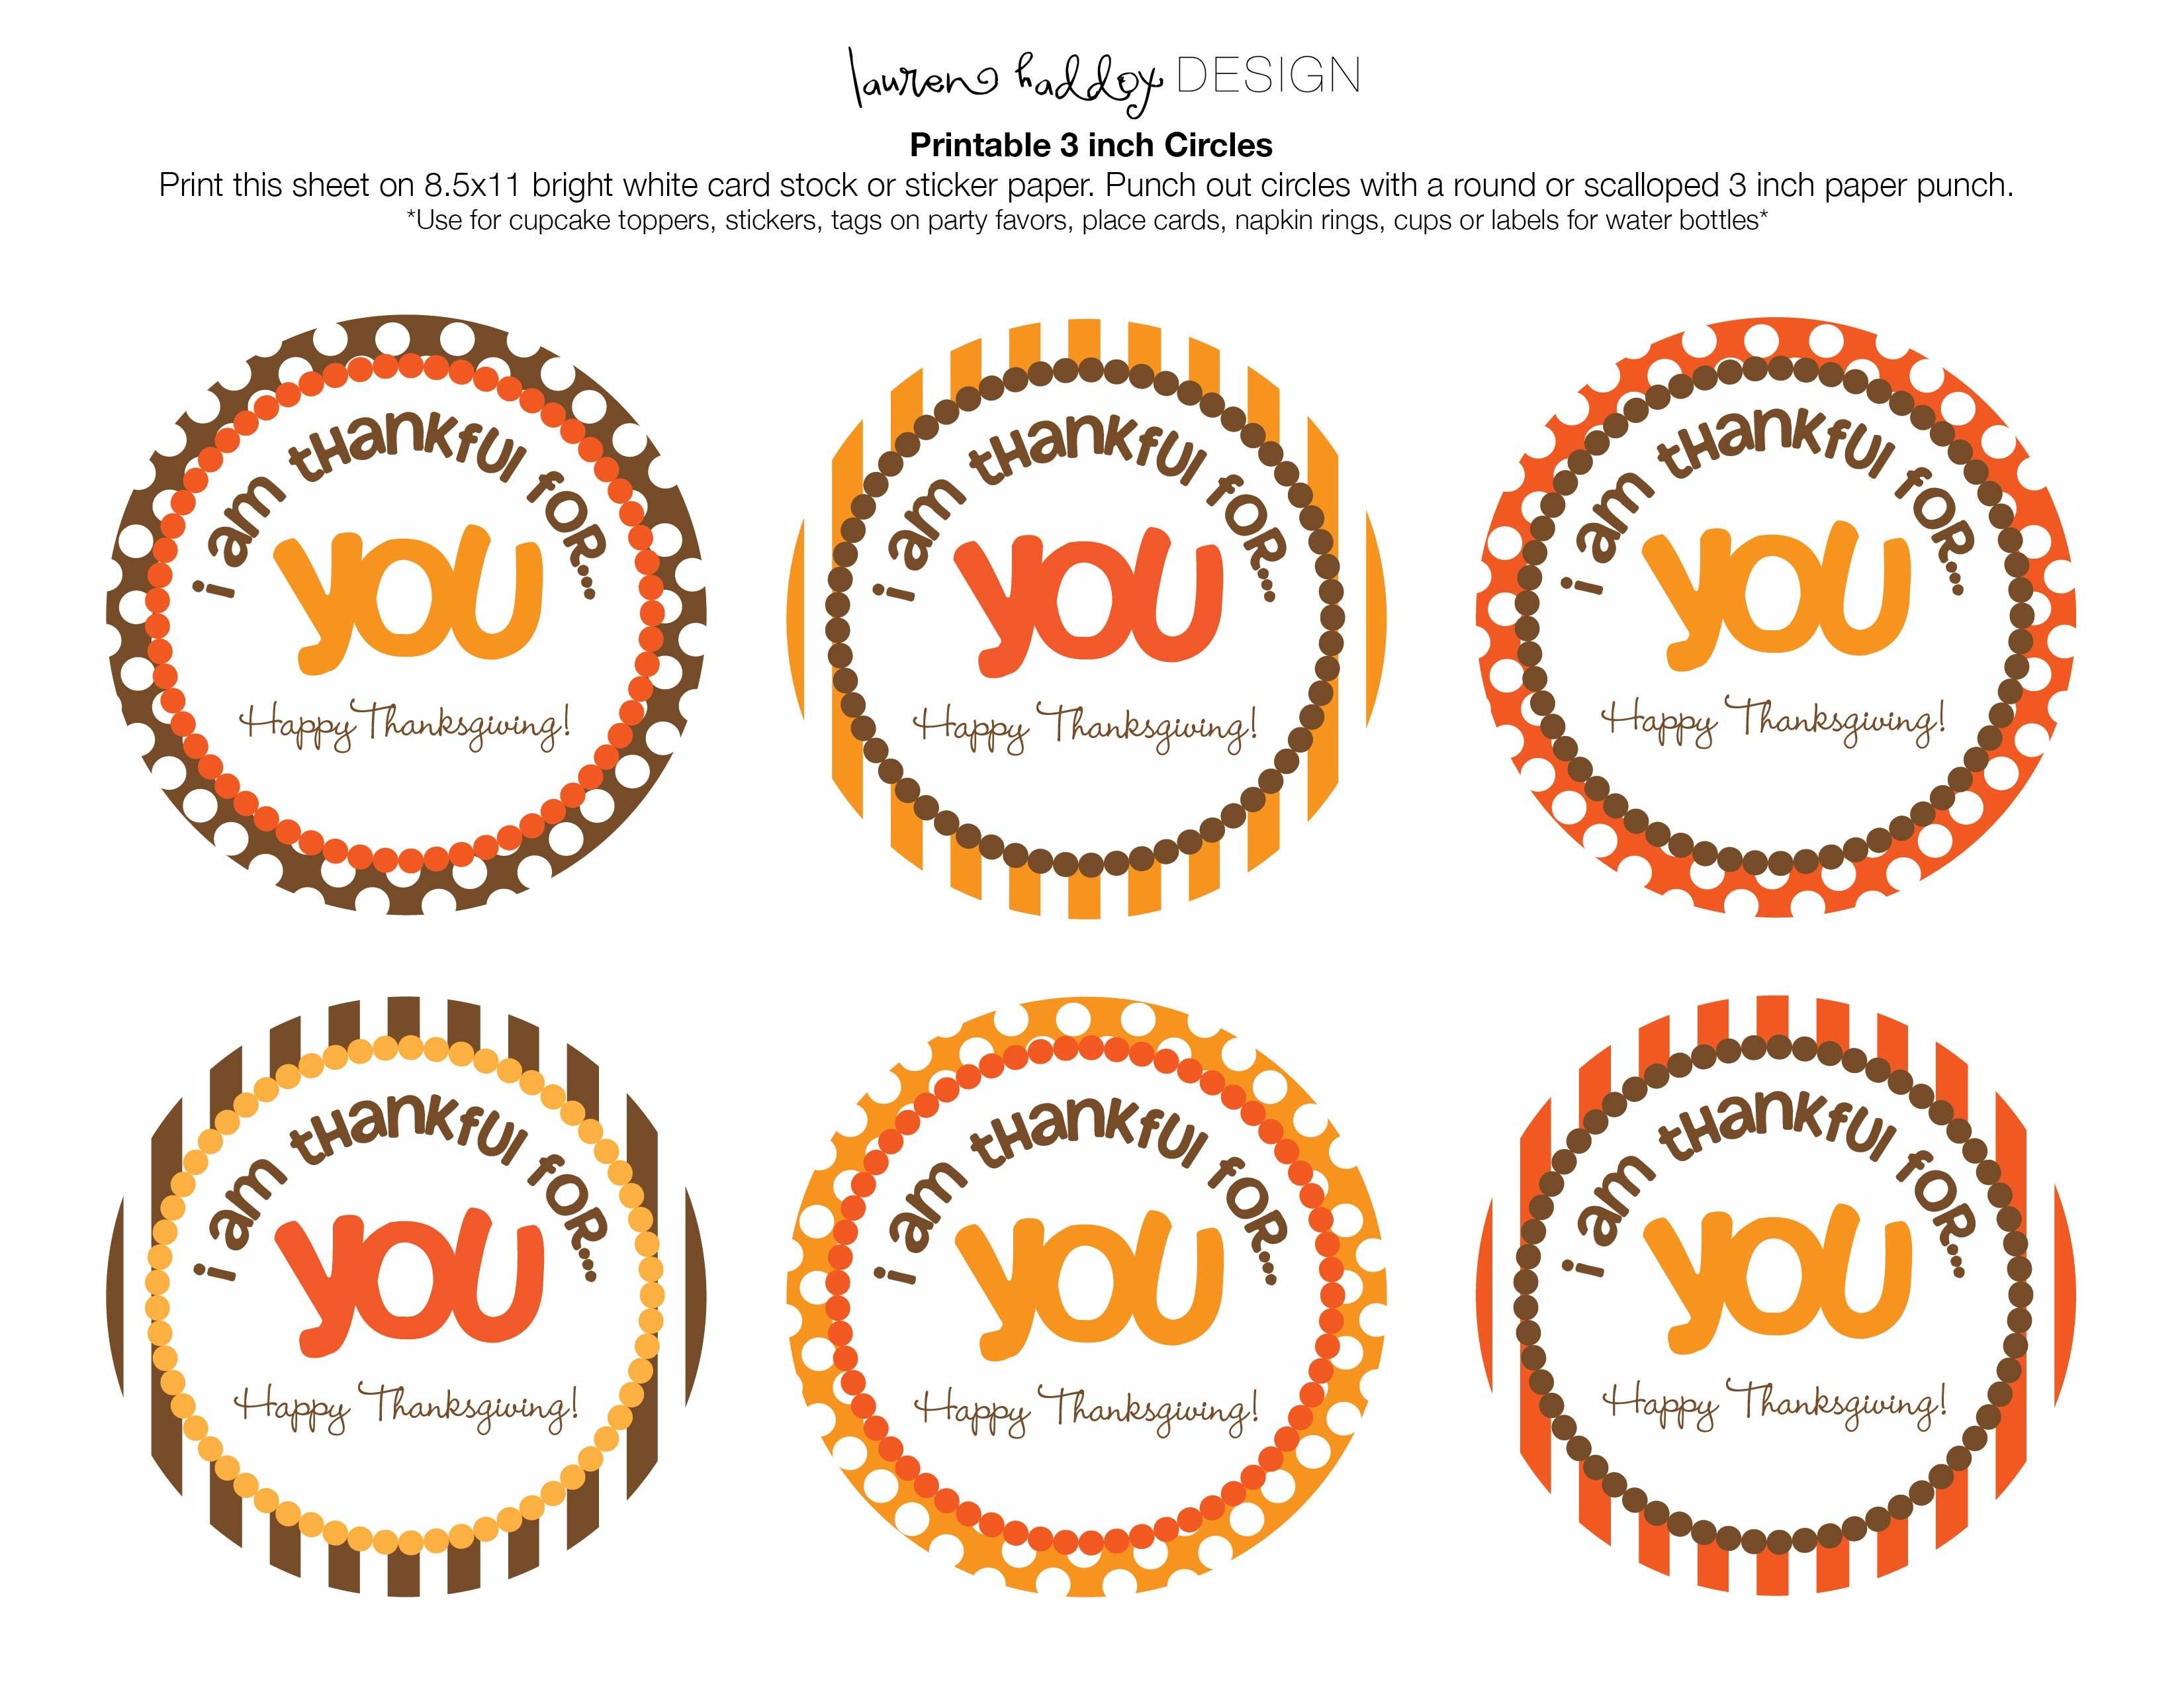 7 Images of Happy Thanksgiving Free Printable Tags